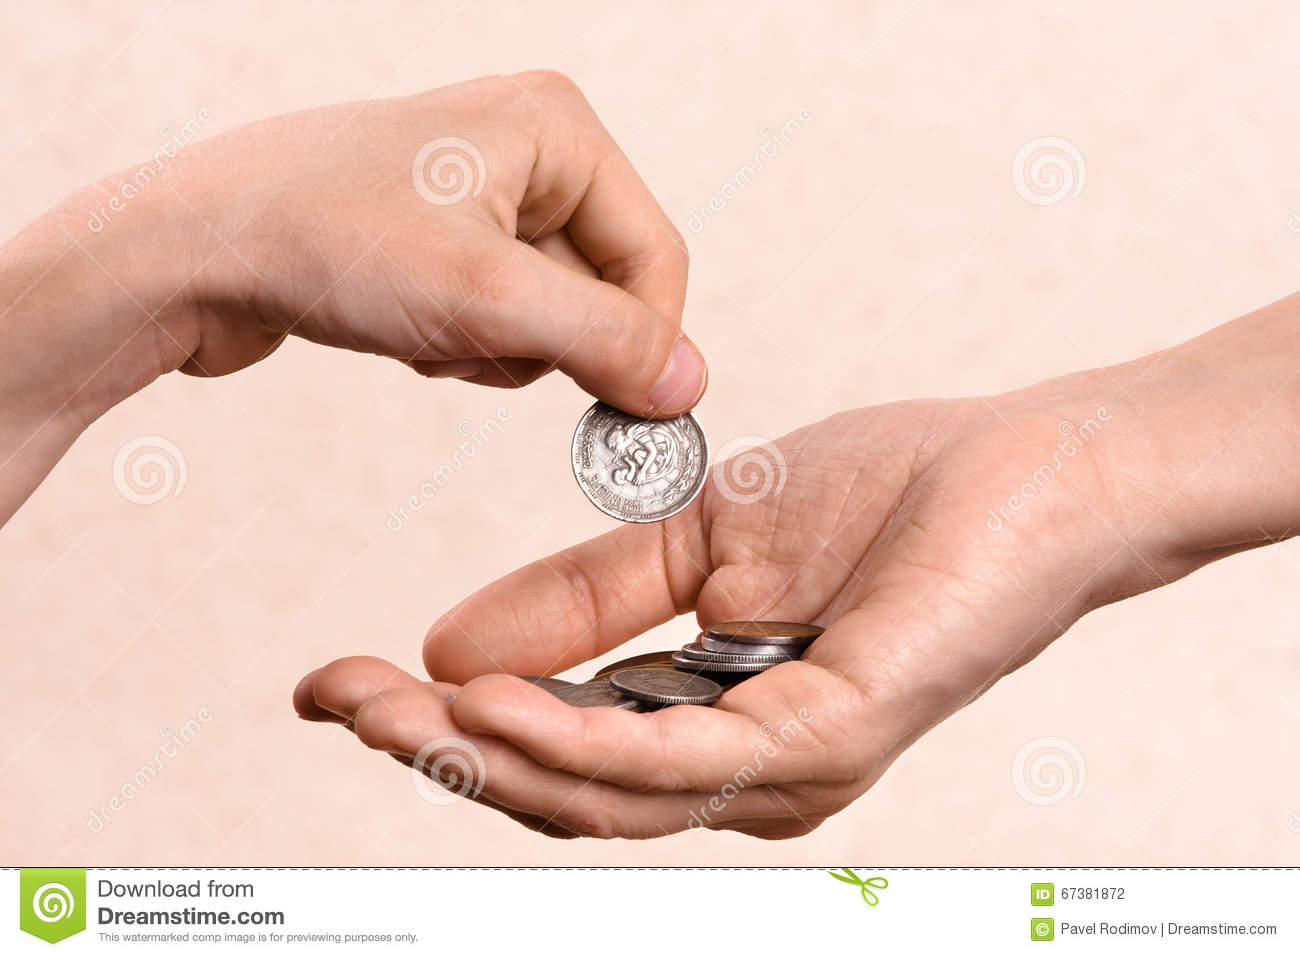 Image result for putting coins in a hand